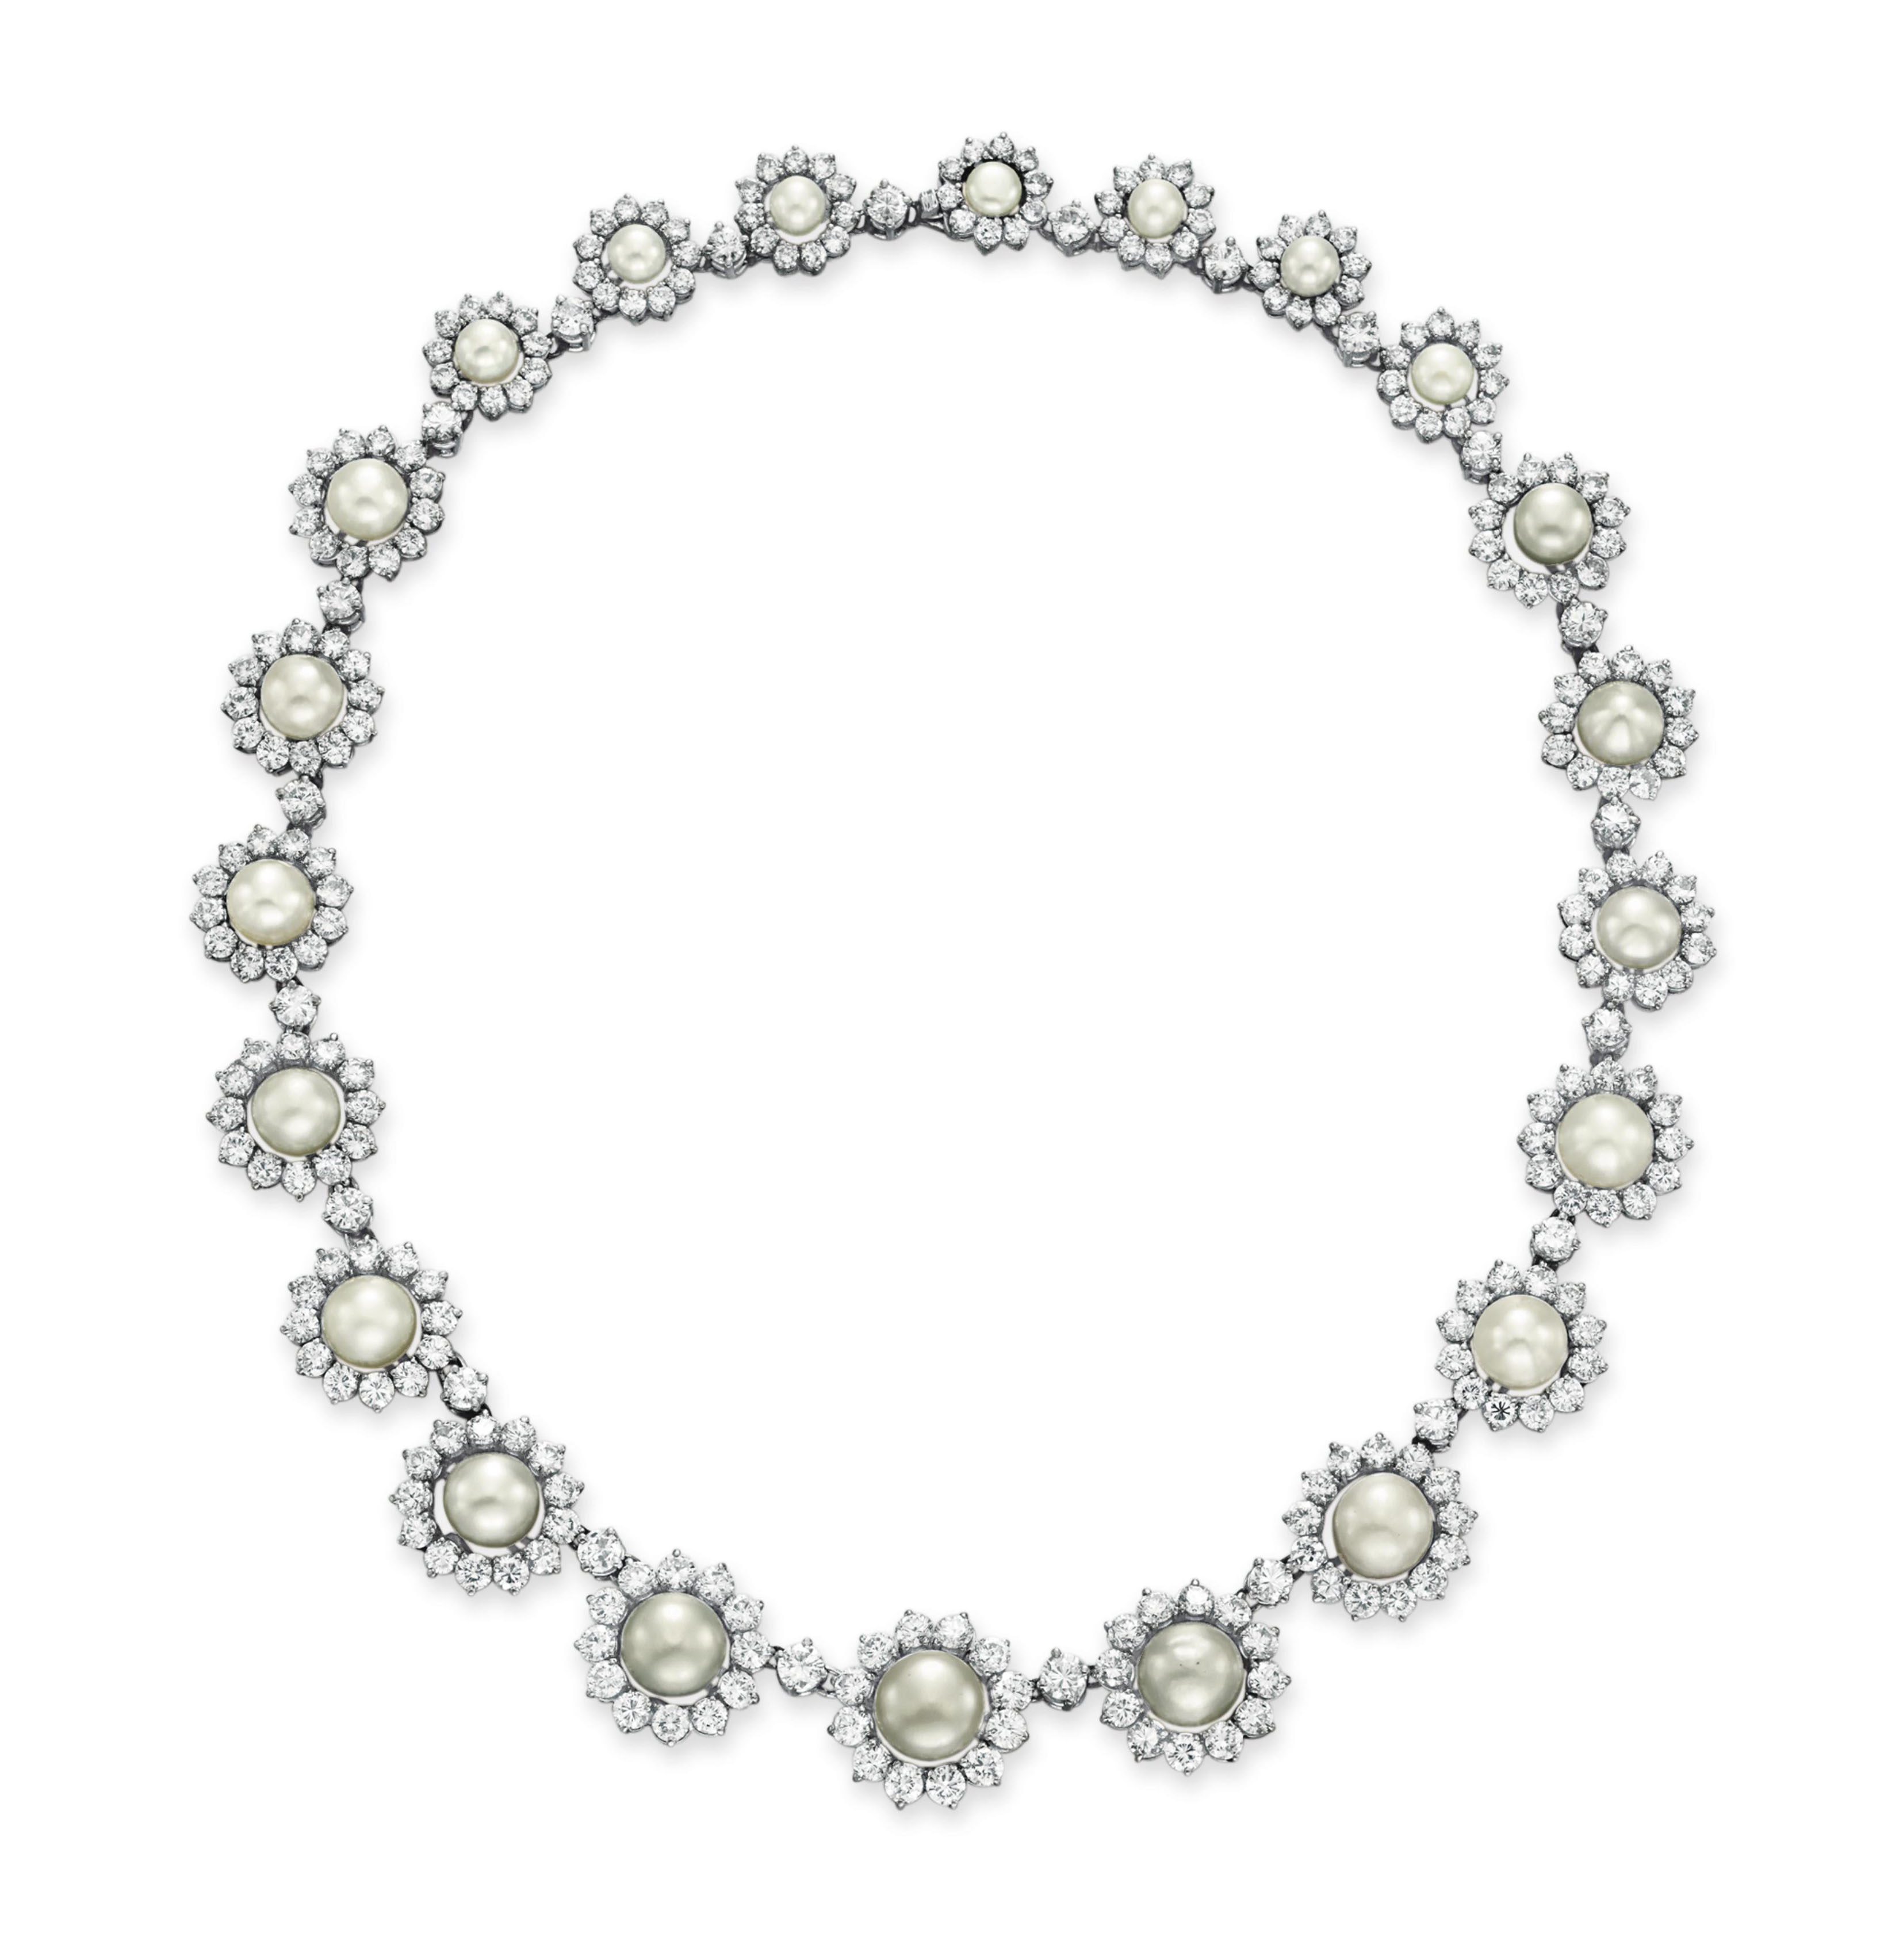 A DIAMOND AND NATURAL PEARL NECKLACE, BY CHANTECLER